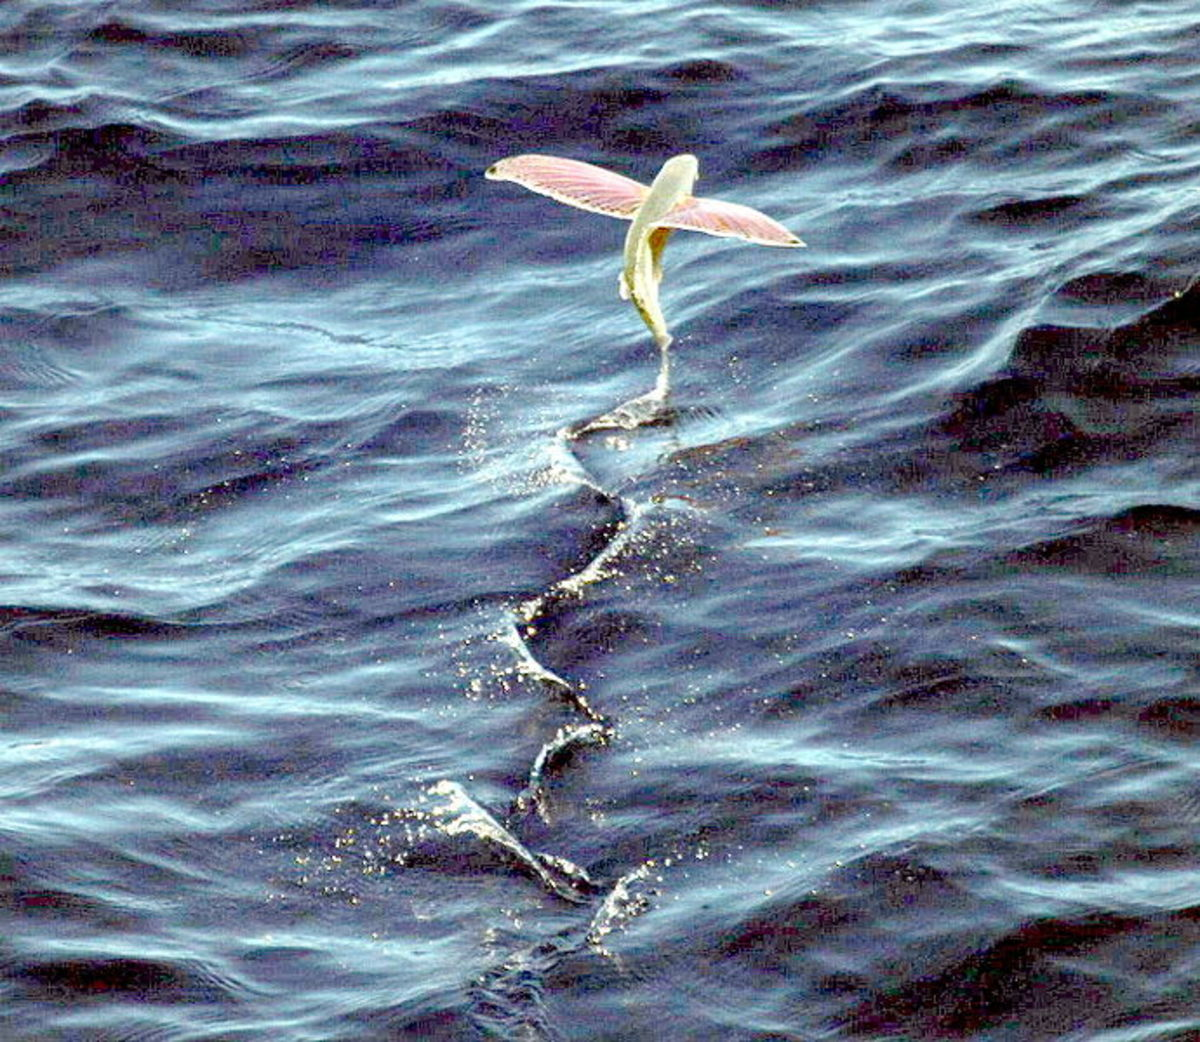 A four-winged flying fish